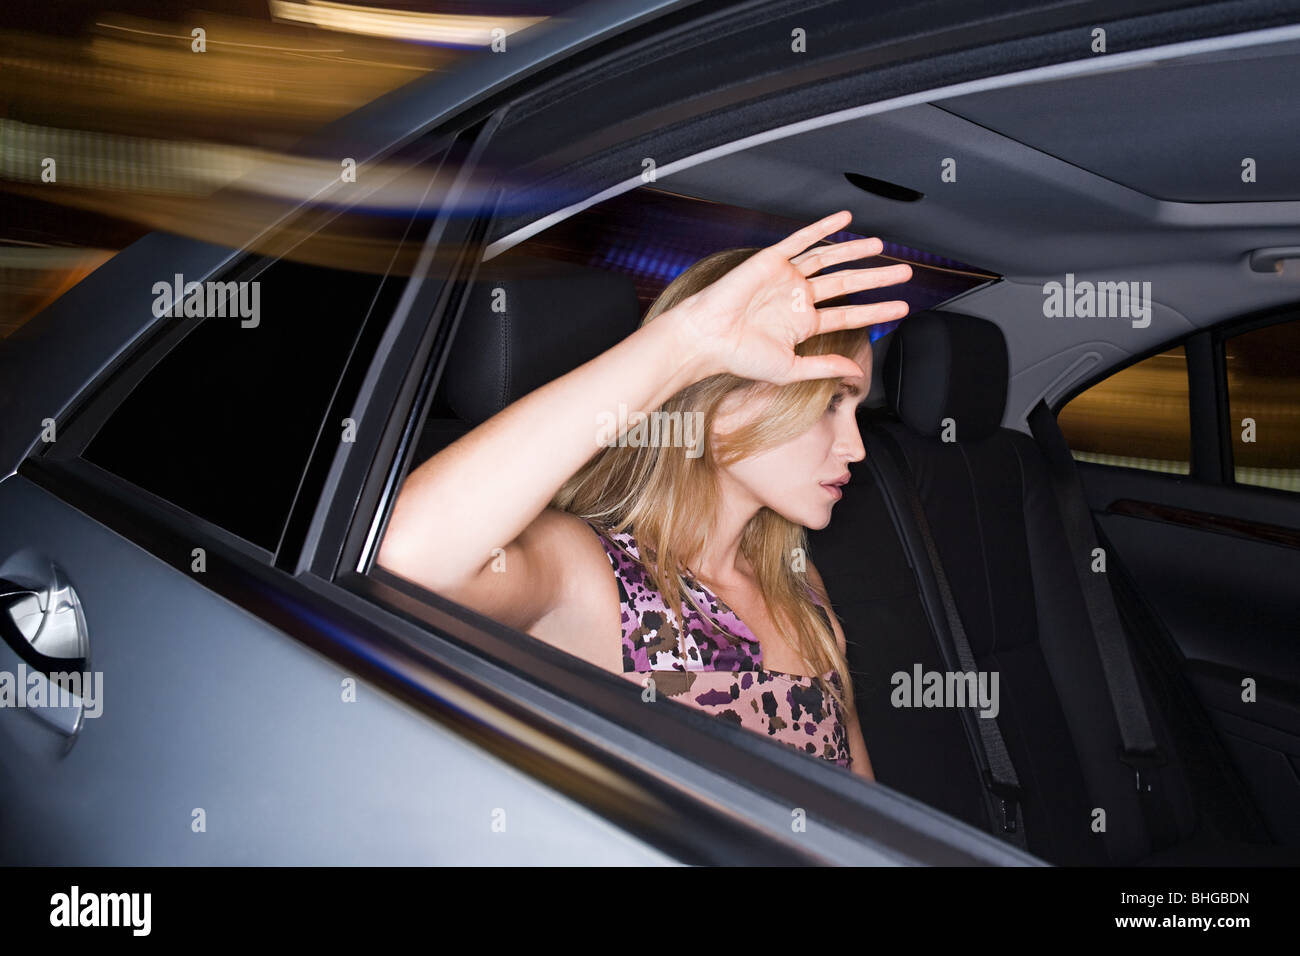 Woman with hand raised to car window - Stock Image